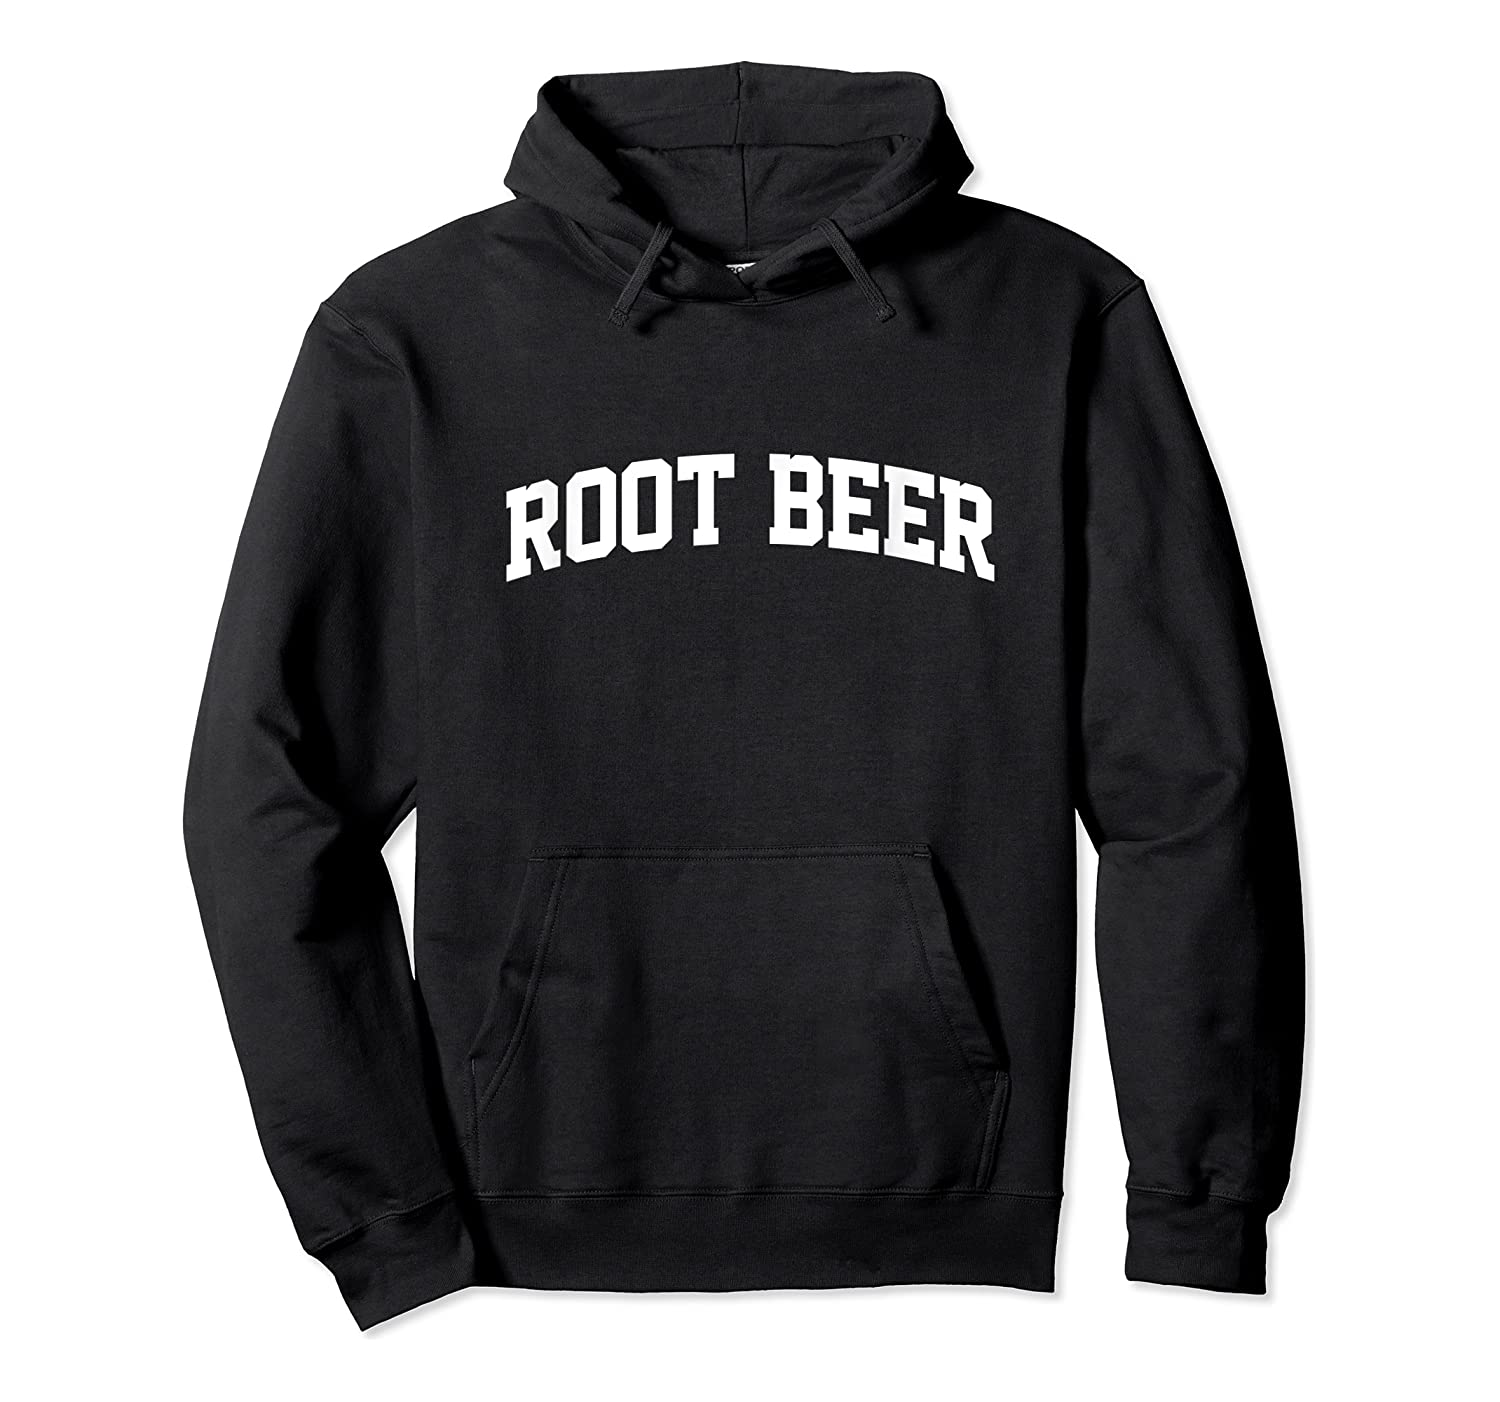 Root Beer Vintage Sports Arch Funny Shirts Unisex Pullover Hoodie